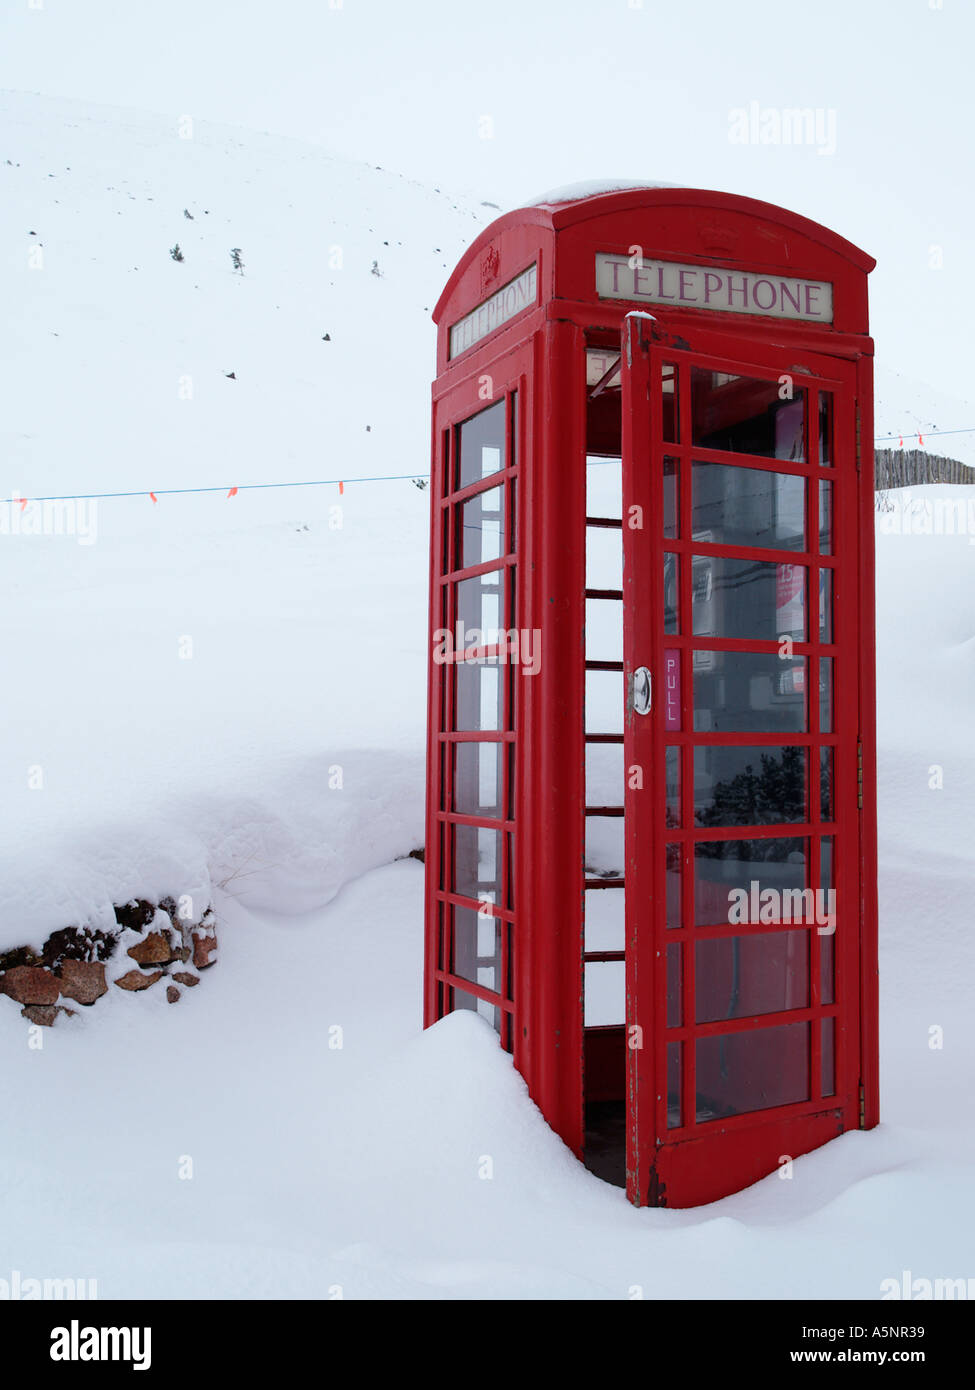 Old fashioned red telephone box K6 with door open in deep winter snow on Cairngorm mountain Cairn Gorm Highland Scotland UK - Stock Image